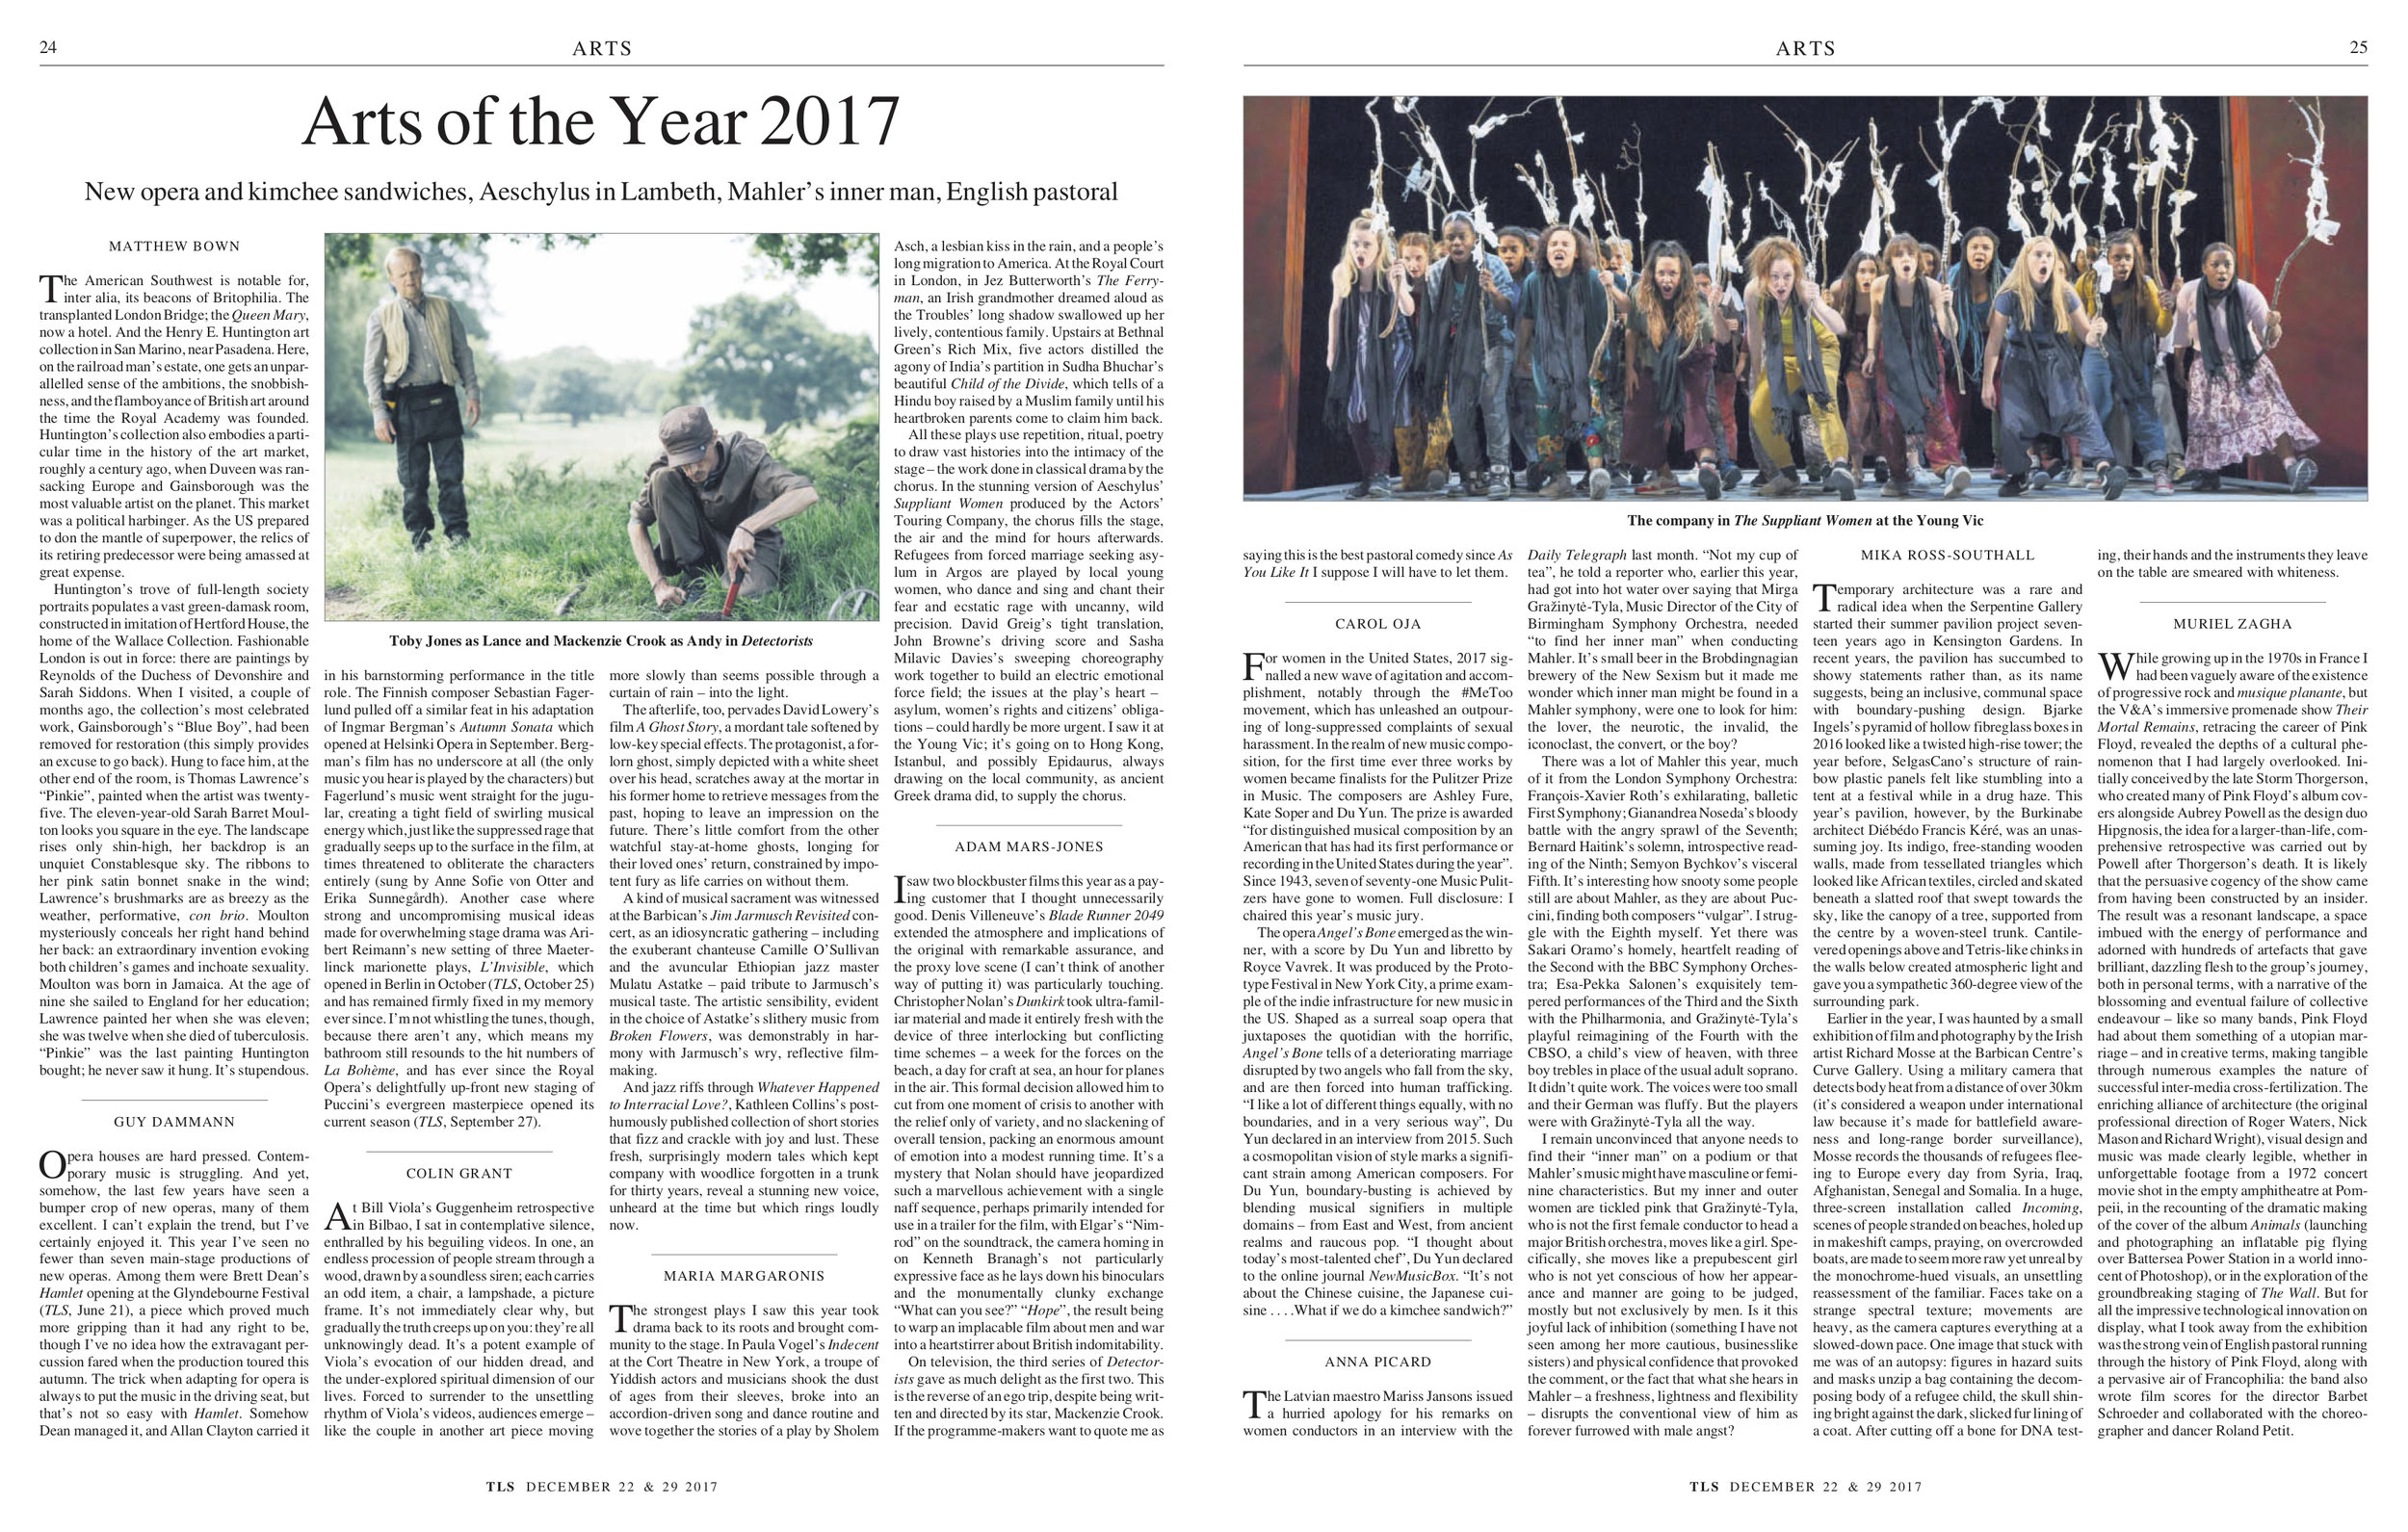 Arts of the Year 2017, Published in The Times Literary Supplement, December 22 & 29, 2017